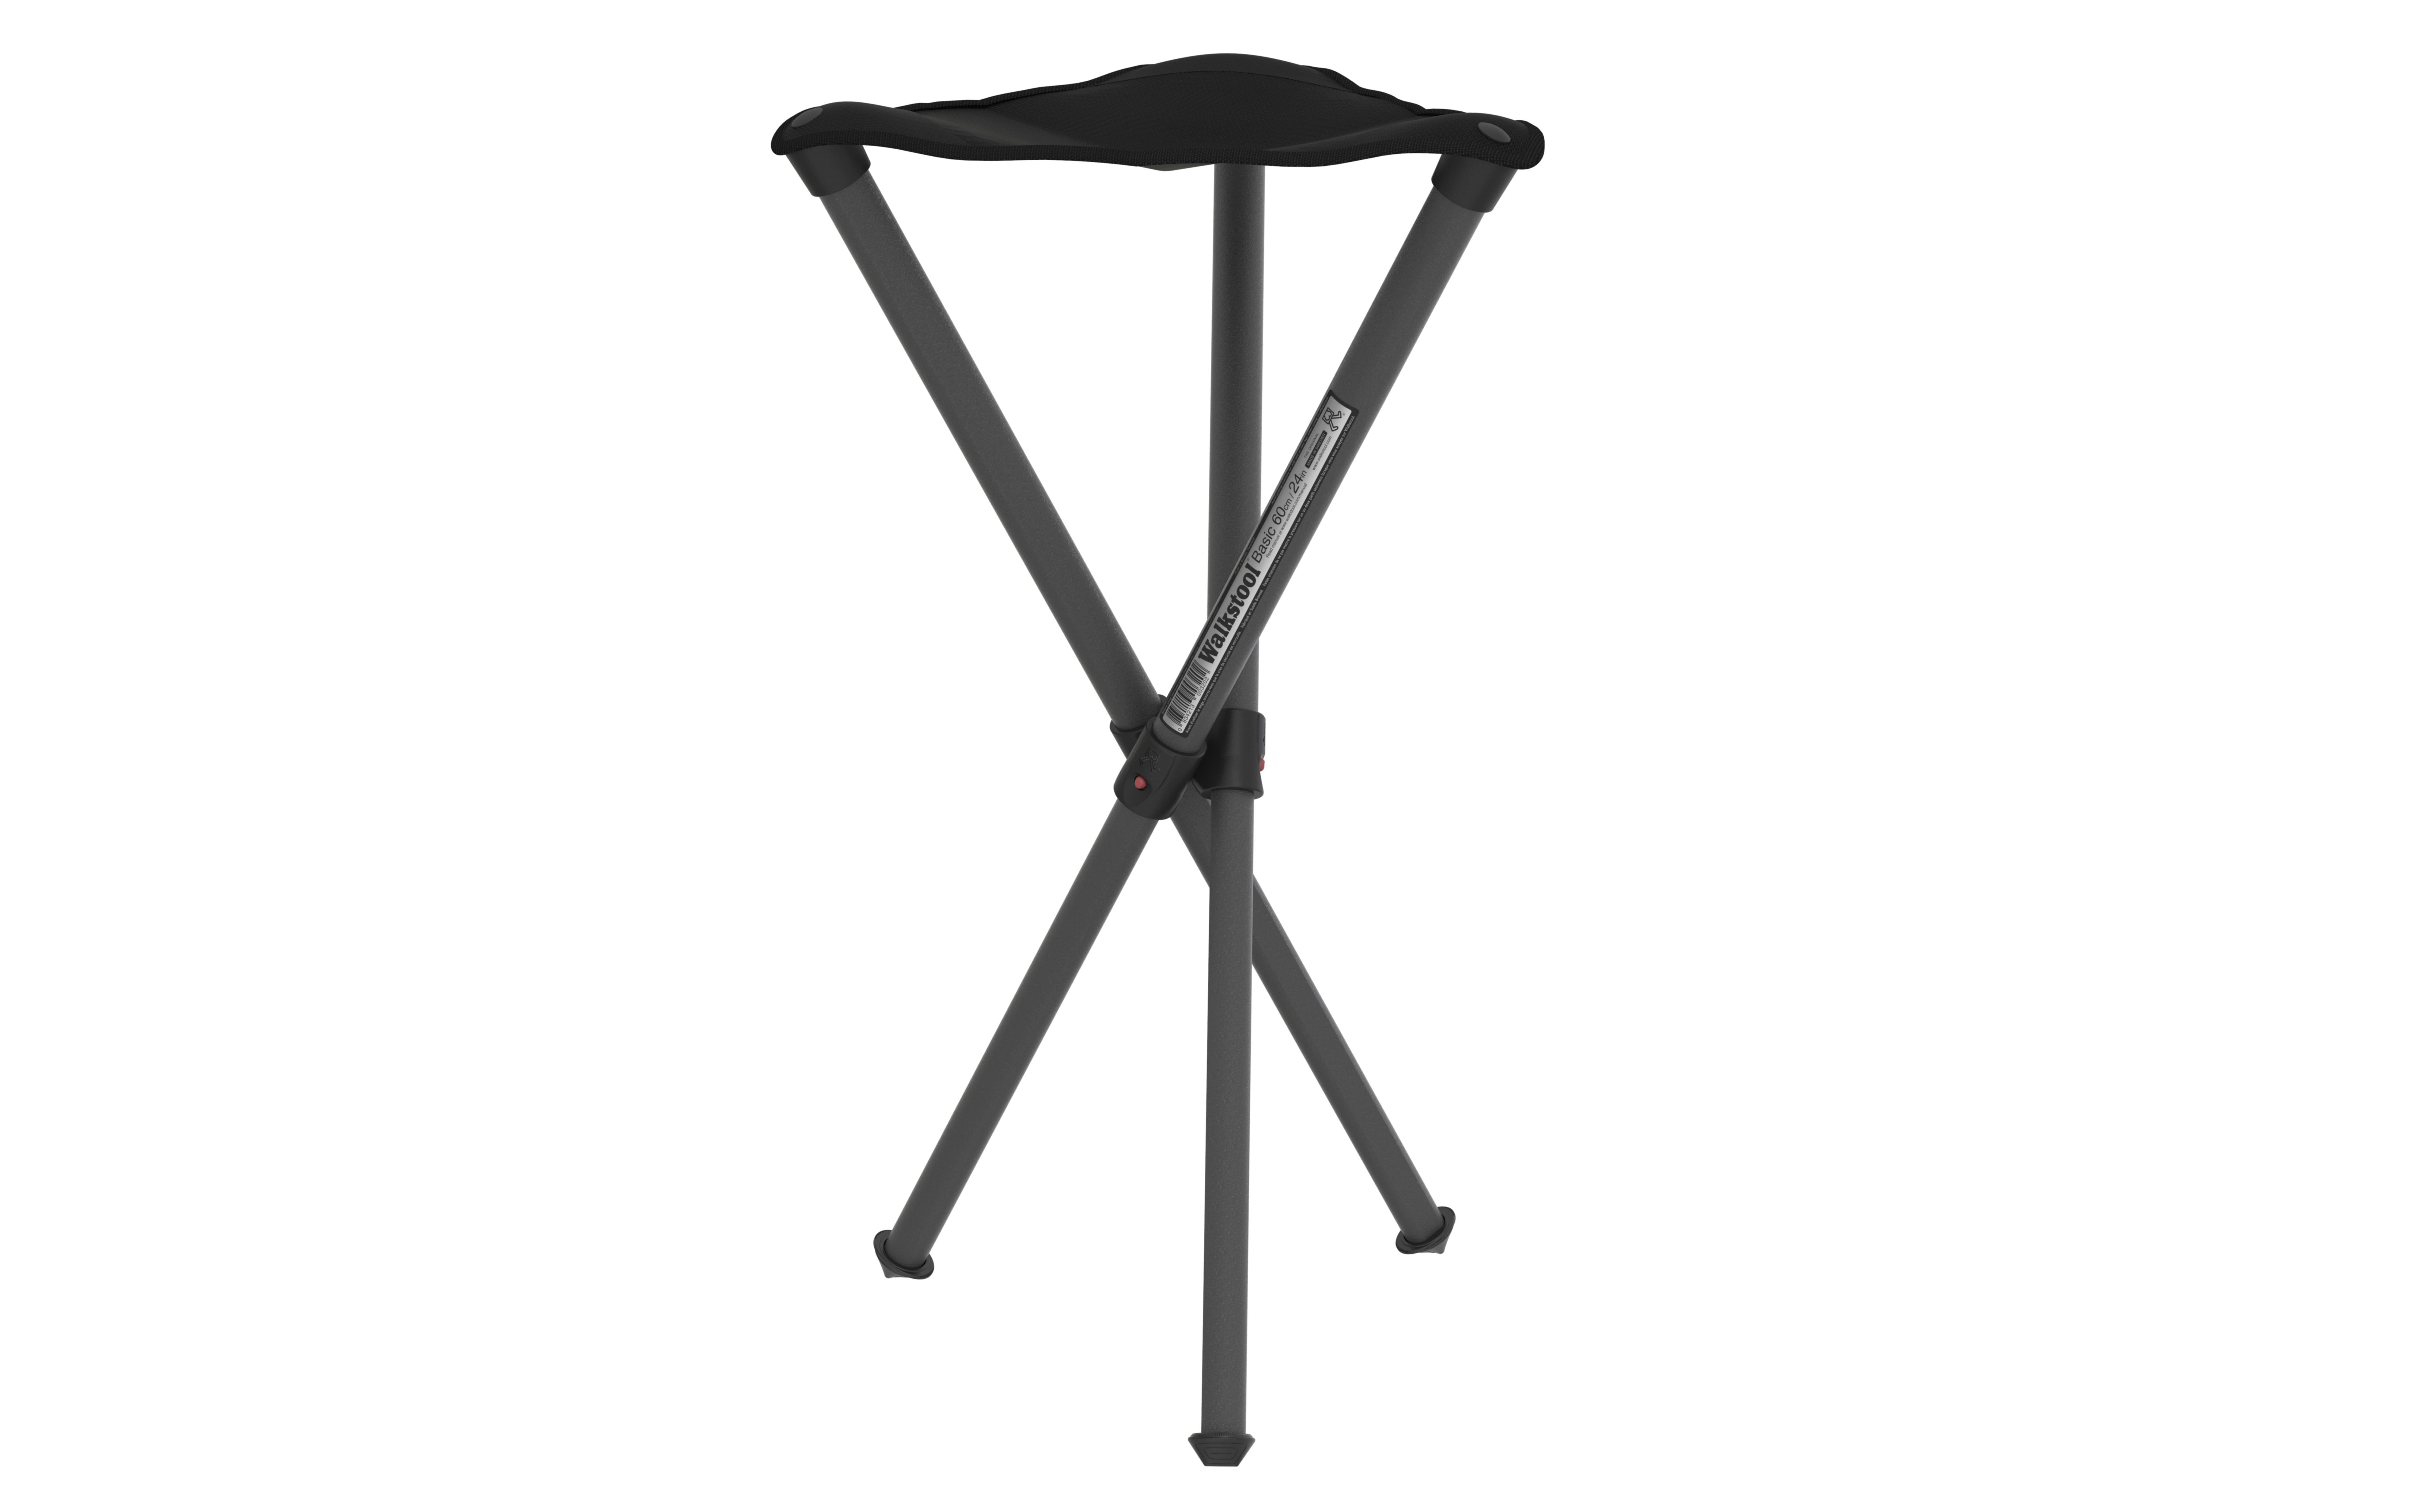 Walkstool Basic